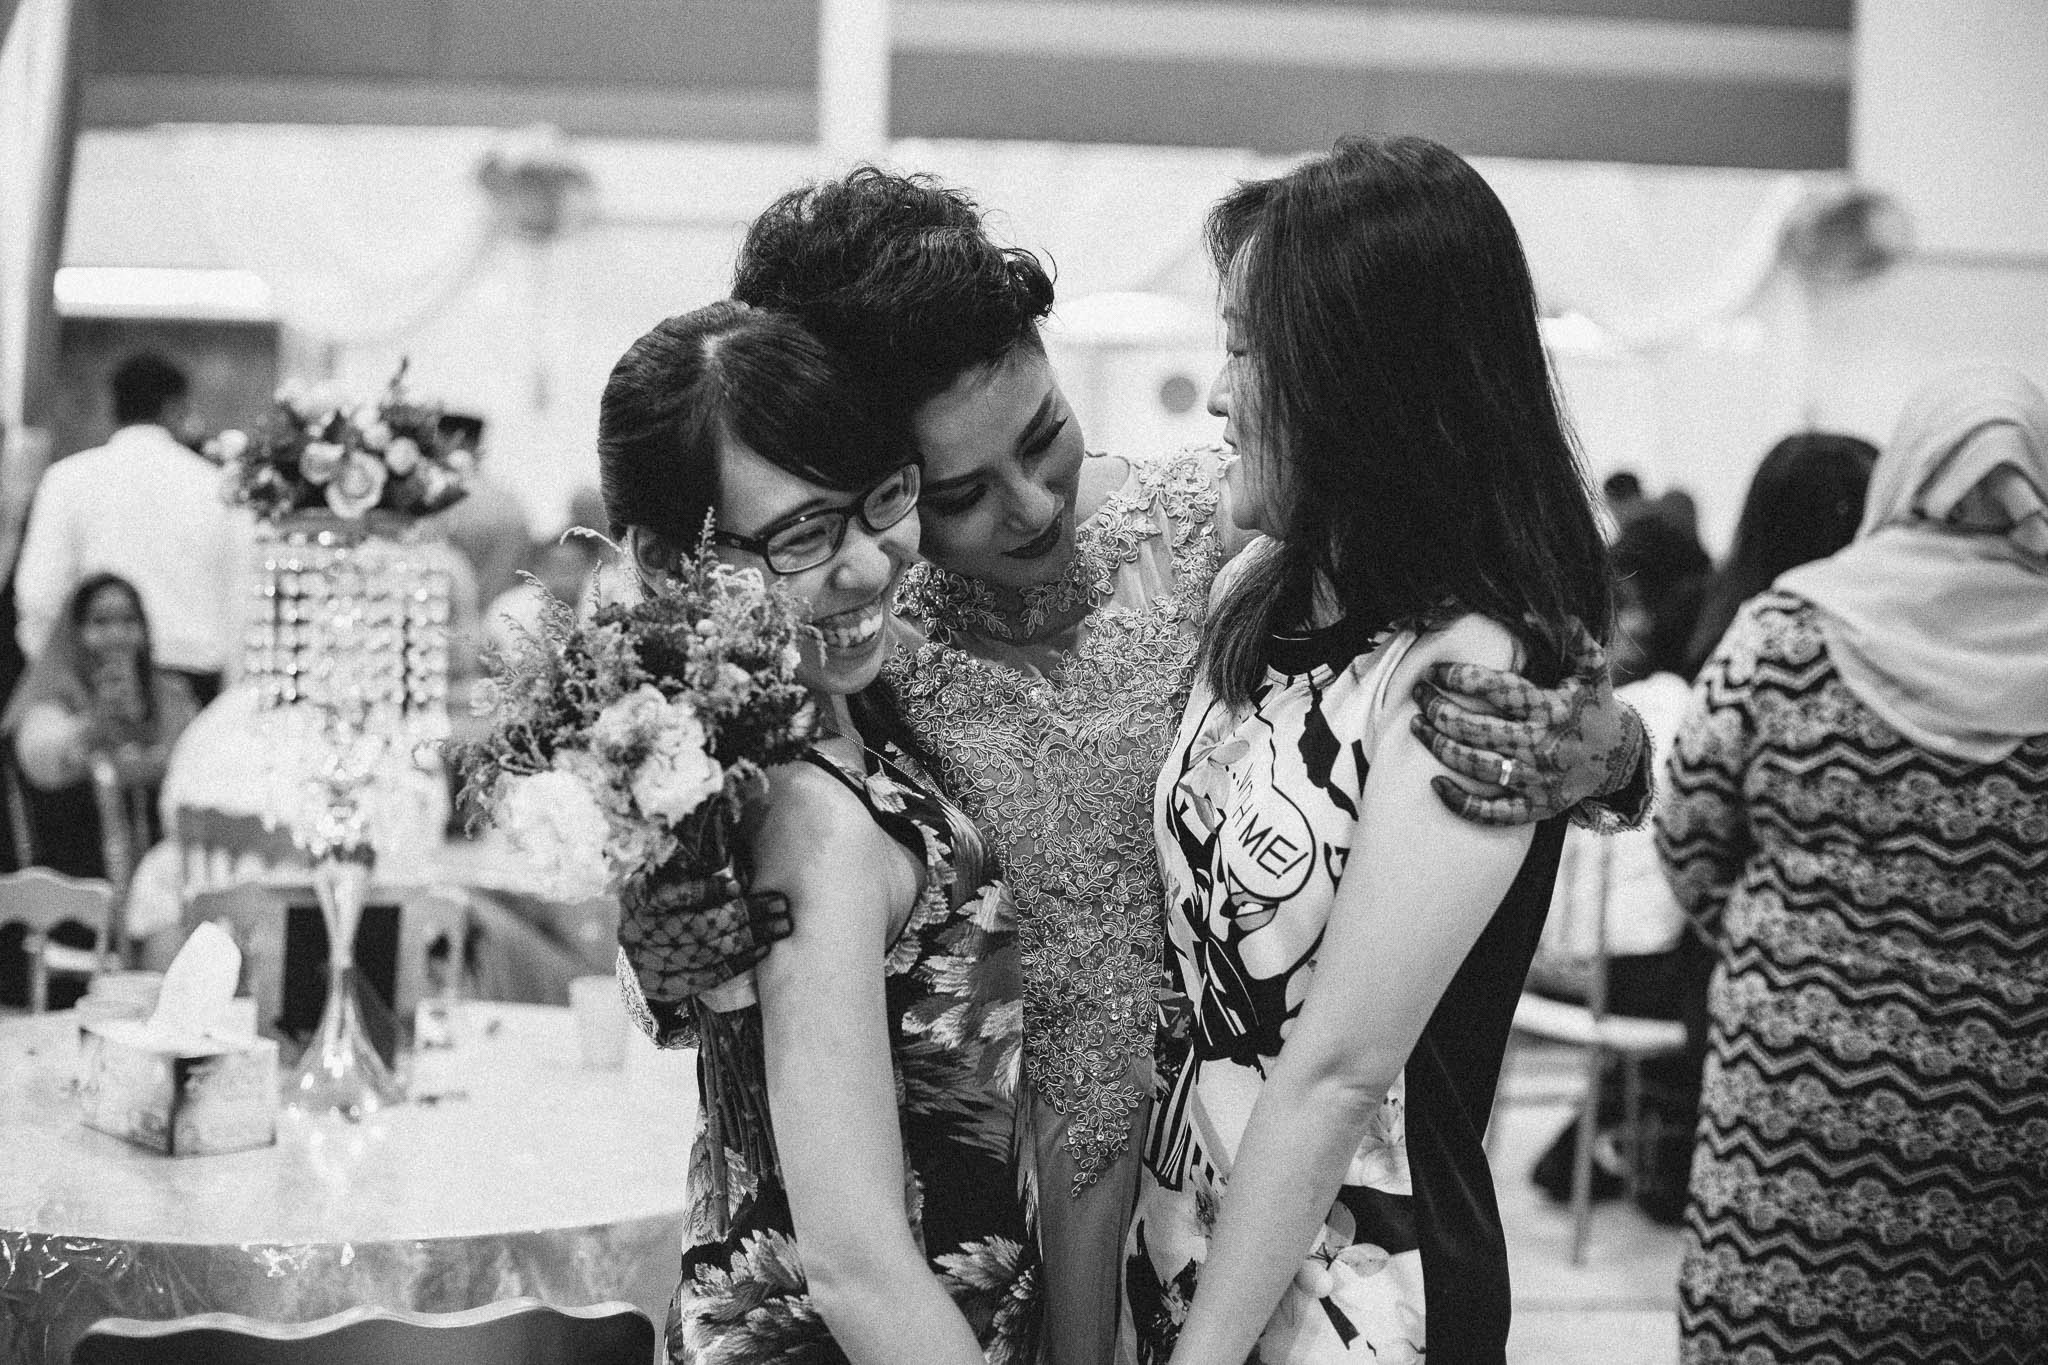 singapore-wedding-photographer-we-made-these-2016-selects-021.jpg